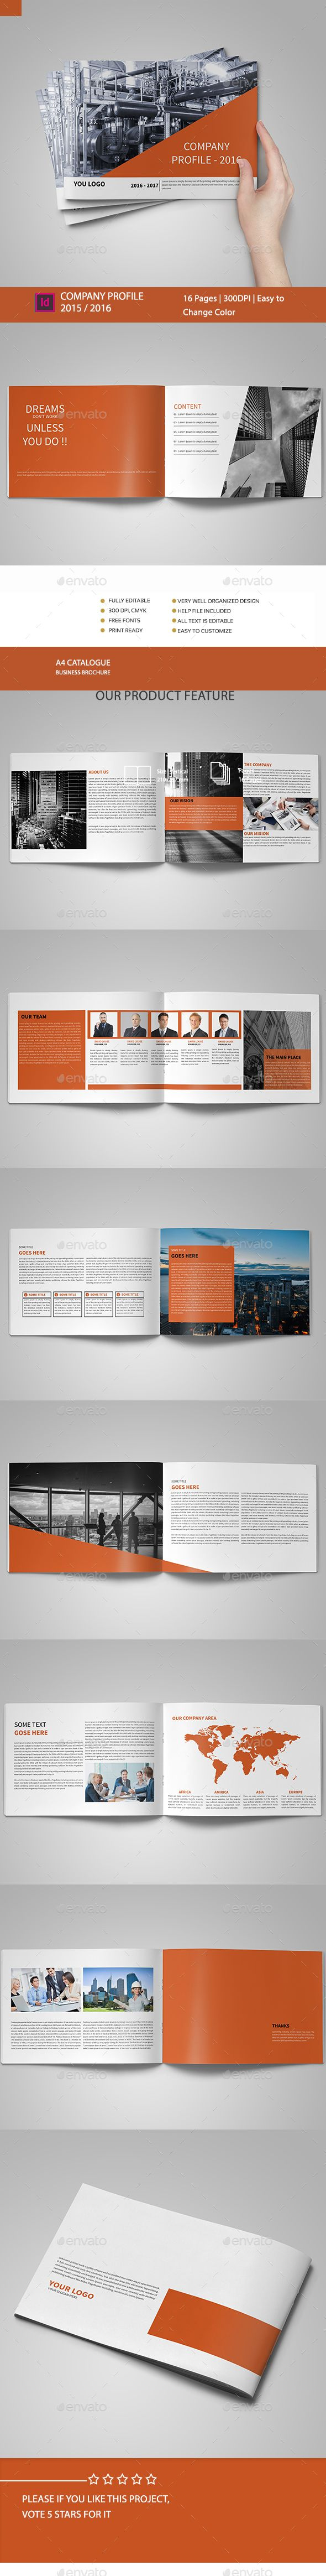 Corporate Brochure Template - Brochures Print Template InDesign INDD. Download here: http://graphicriver.net/item/corporate-brochure-template/16607298?ref=yinkira